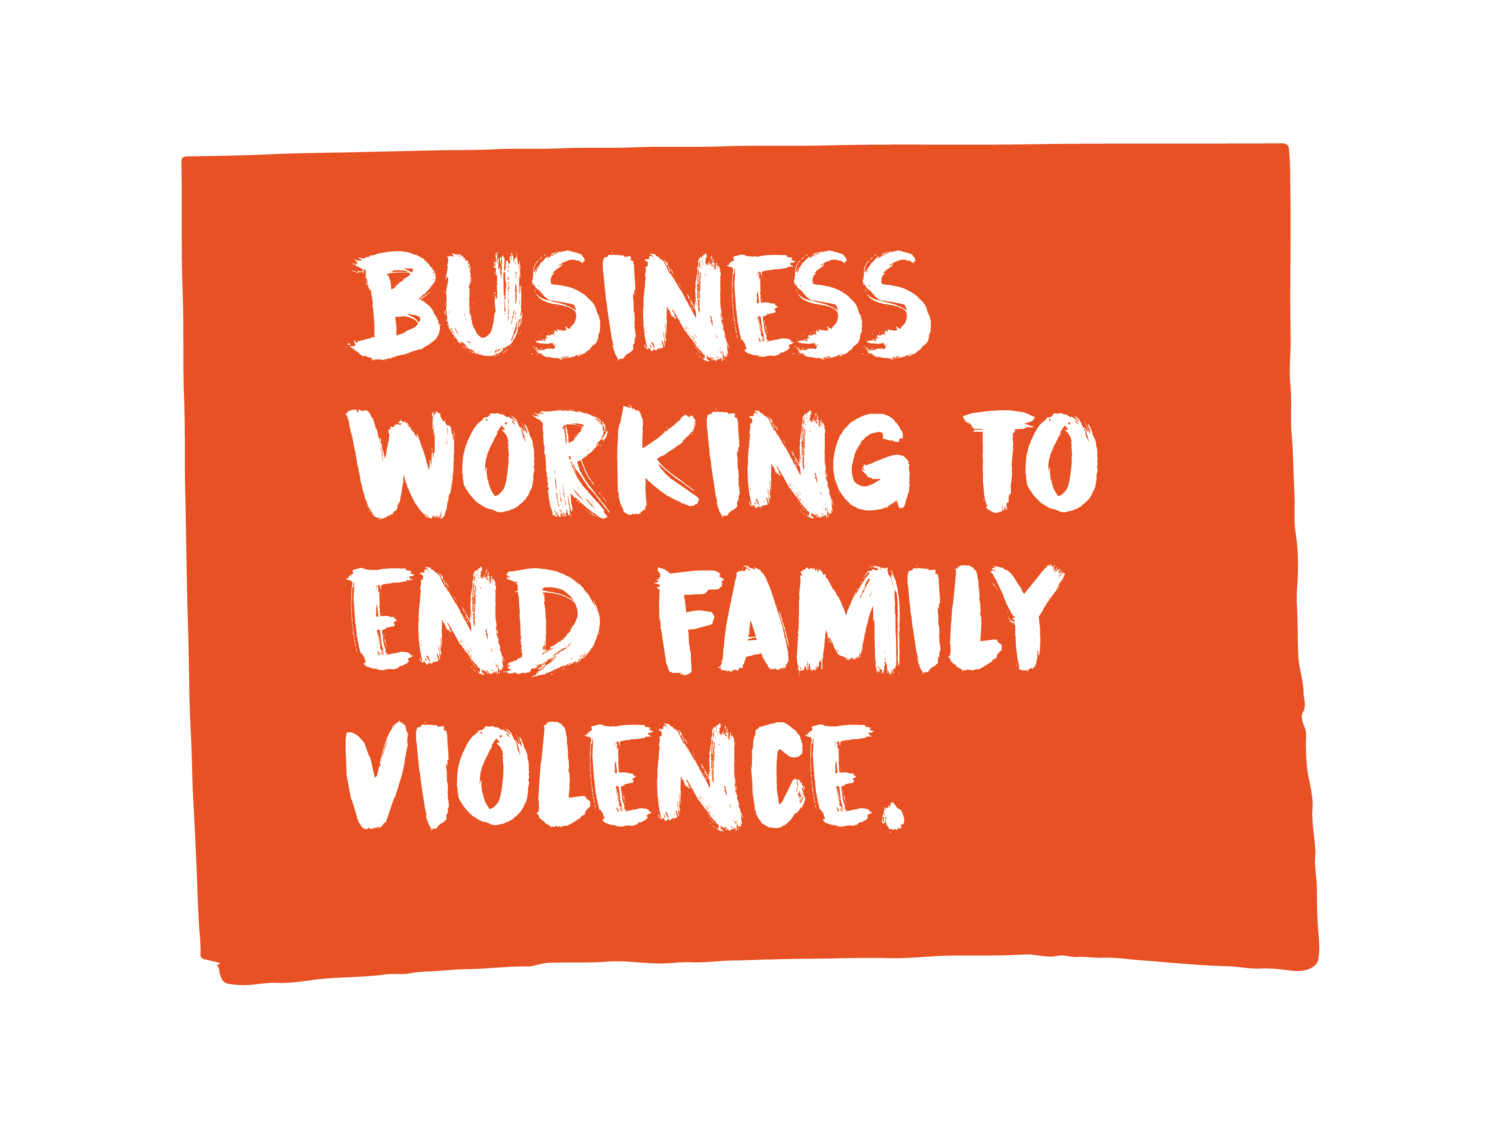 Businesses working to end family violence